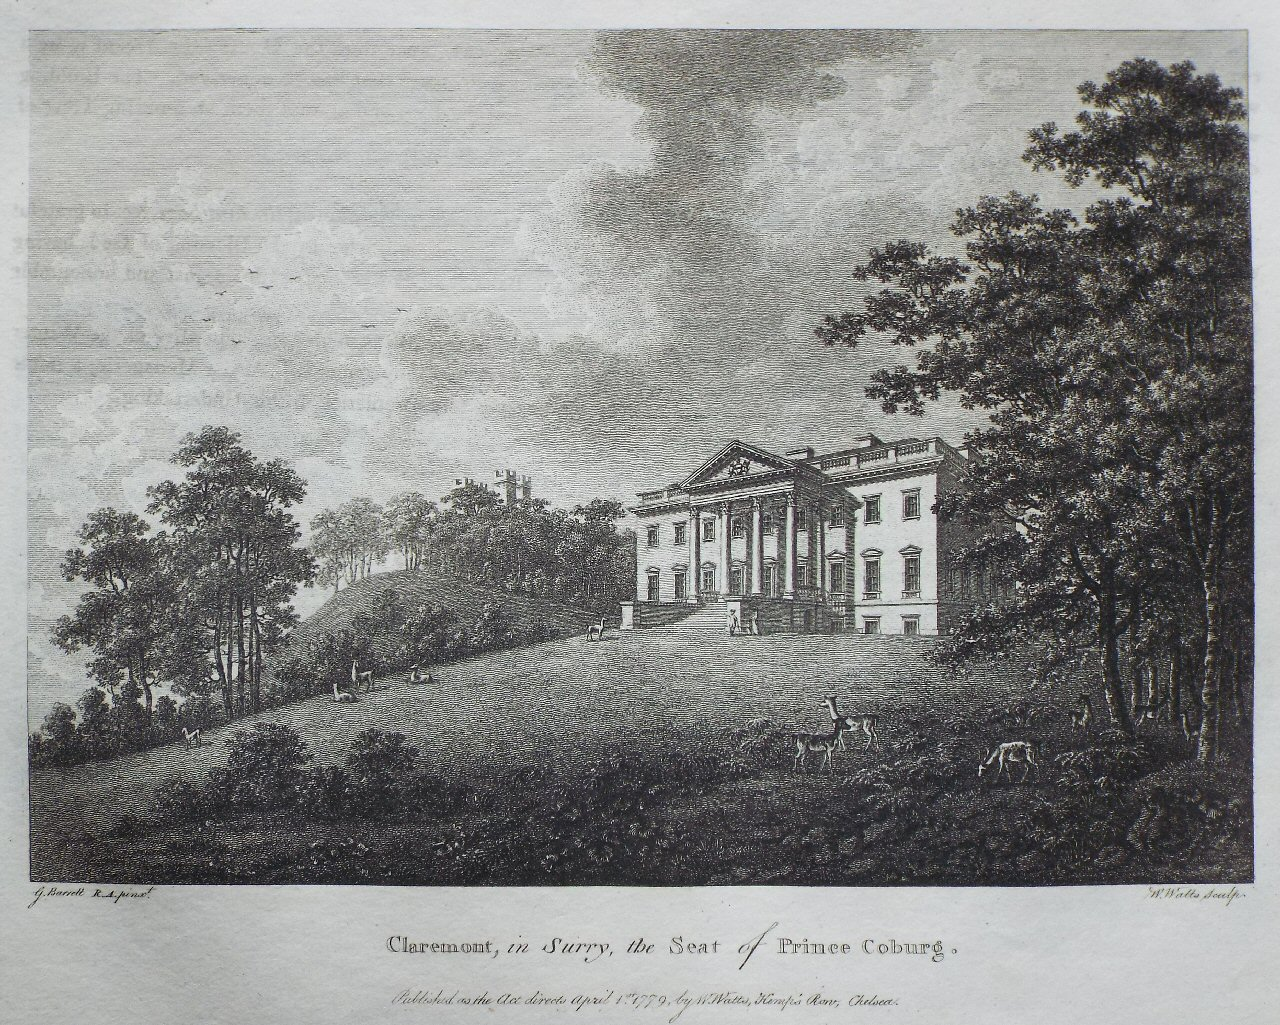 Print - Claremont, in Surry, the Seat of Prince Coburg - Watts